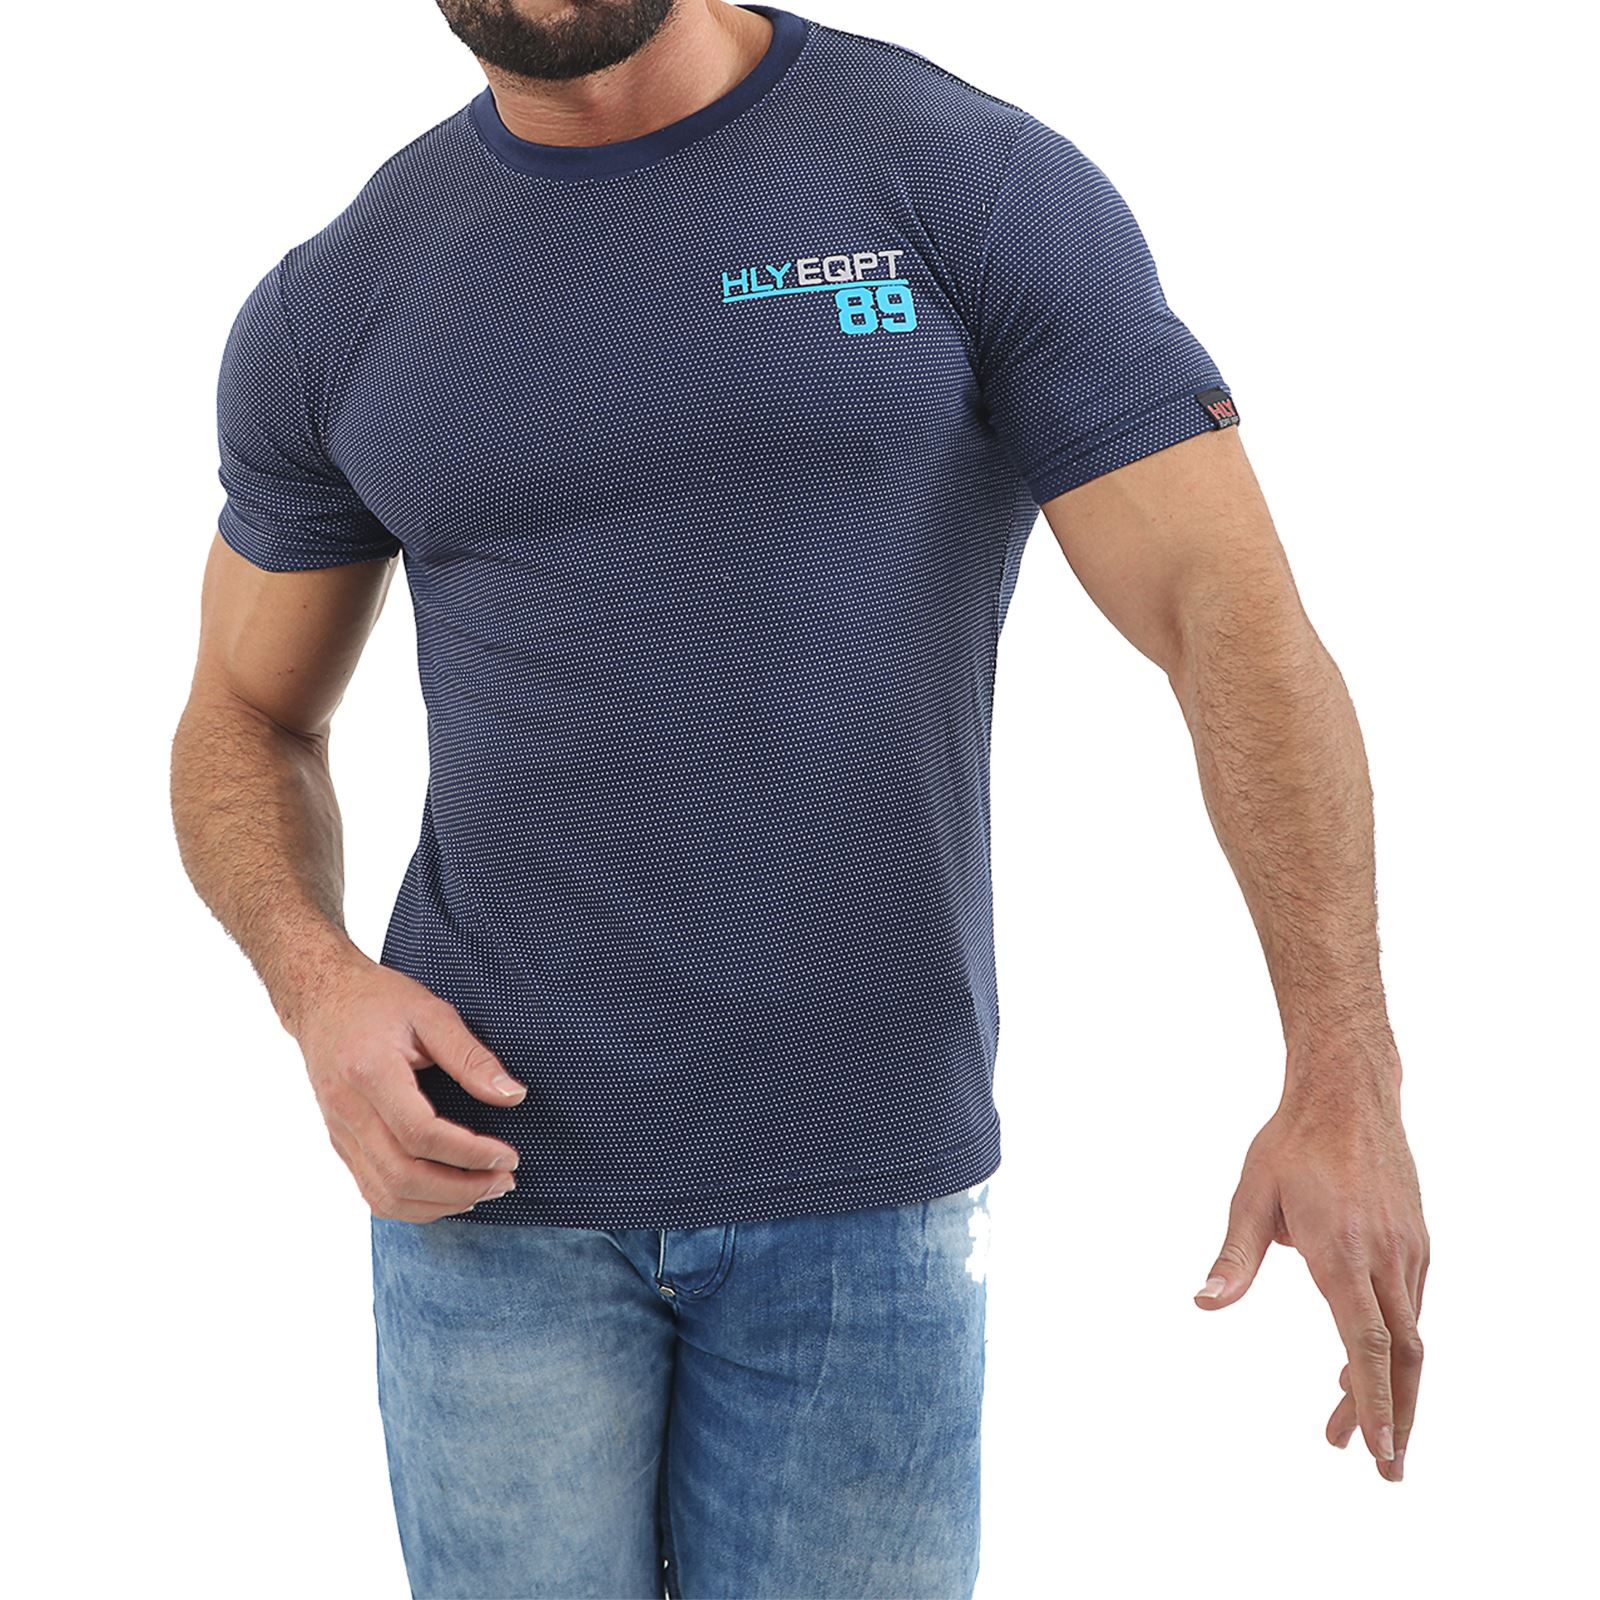 Mens-HLY-Printed-T-Shirt-100-Cotton-Gym-Athletic-Training-Tee-Top-Summer-New thumbnail 42